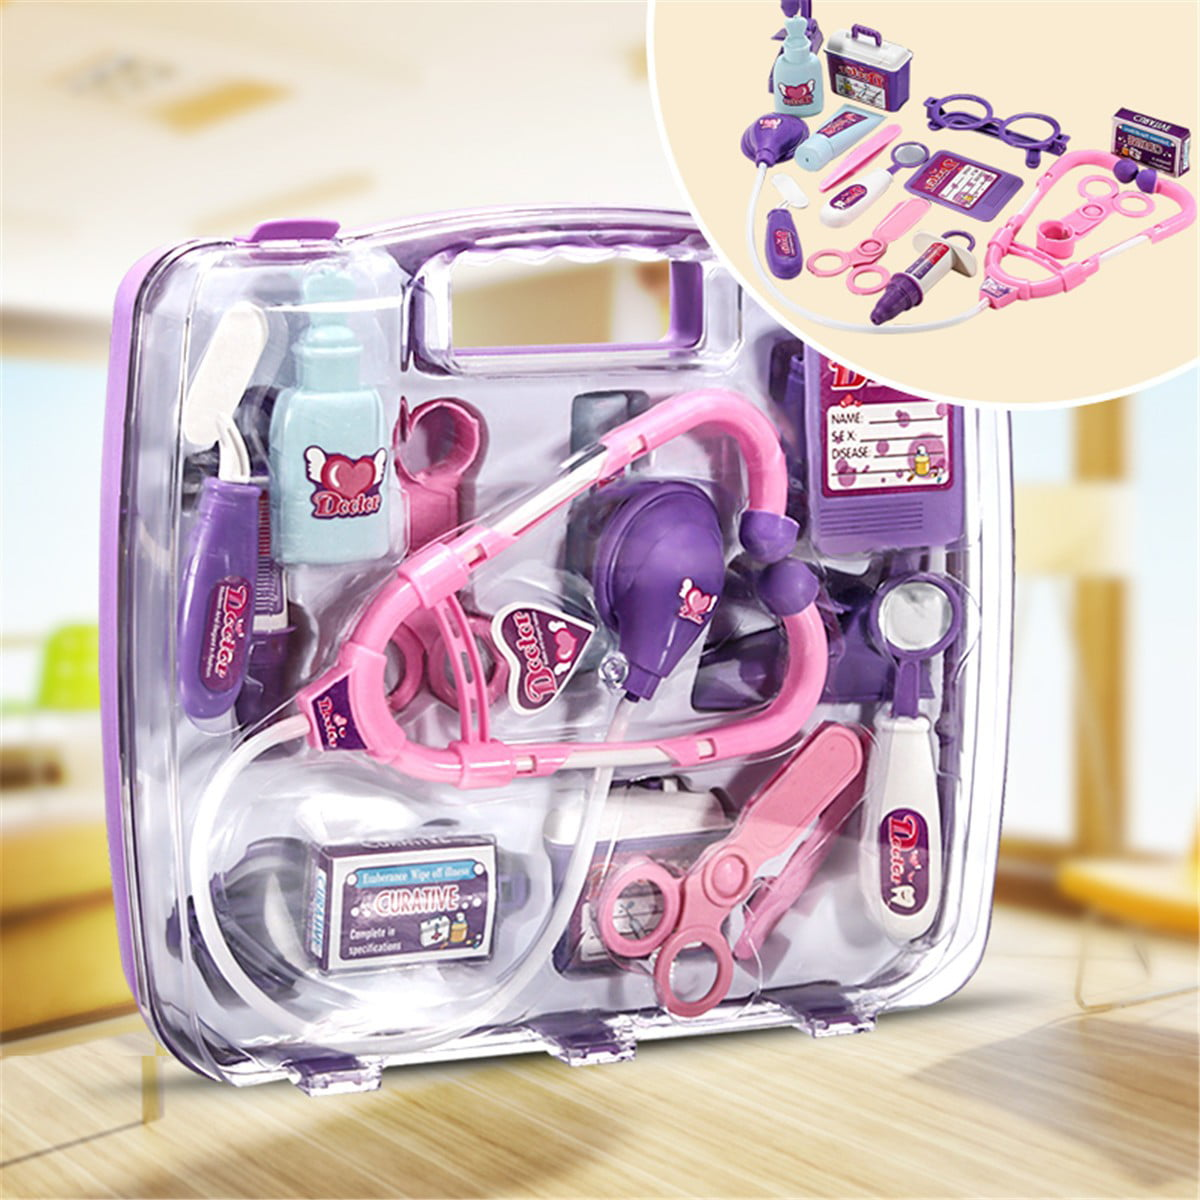 Kids Children Pretending Doctor's Medical Playing Set Case Education Kit Dress-Up Toy Gifts by